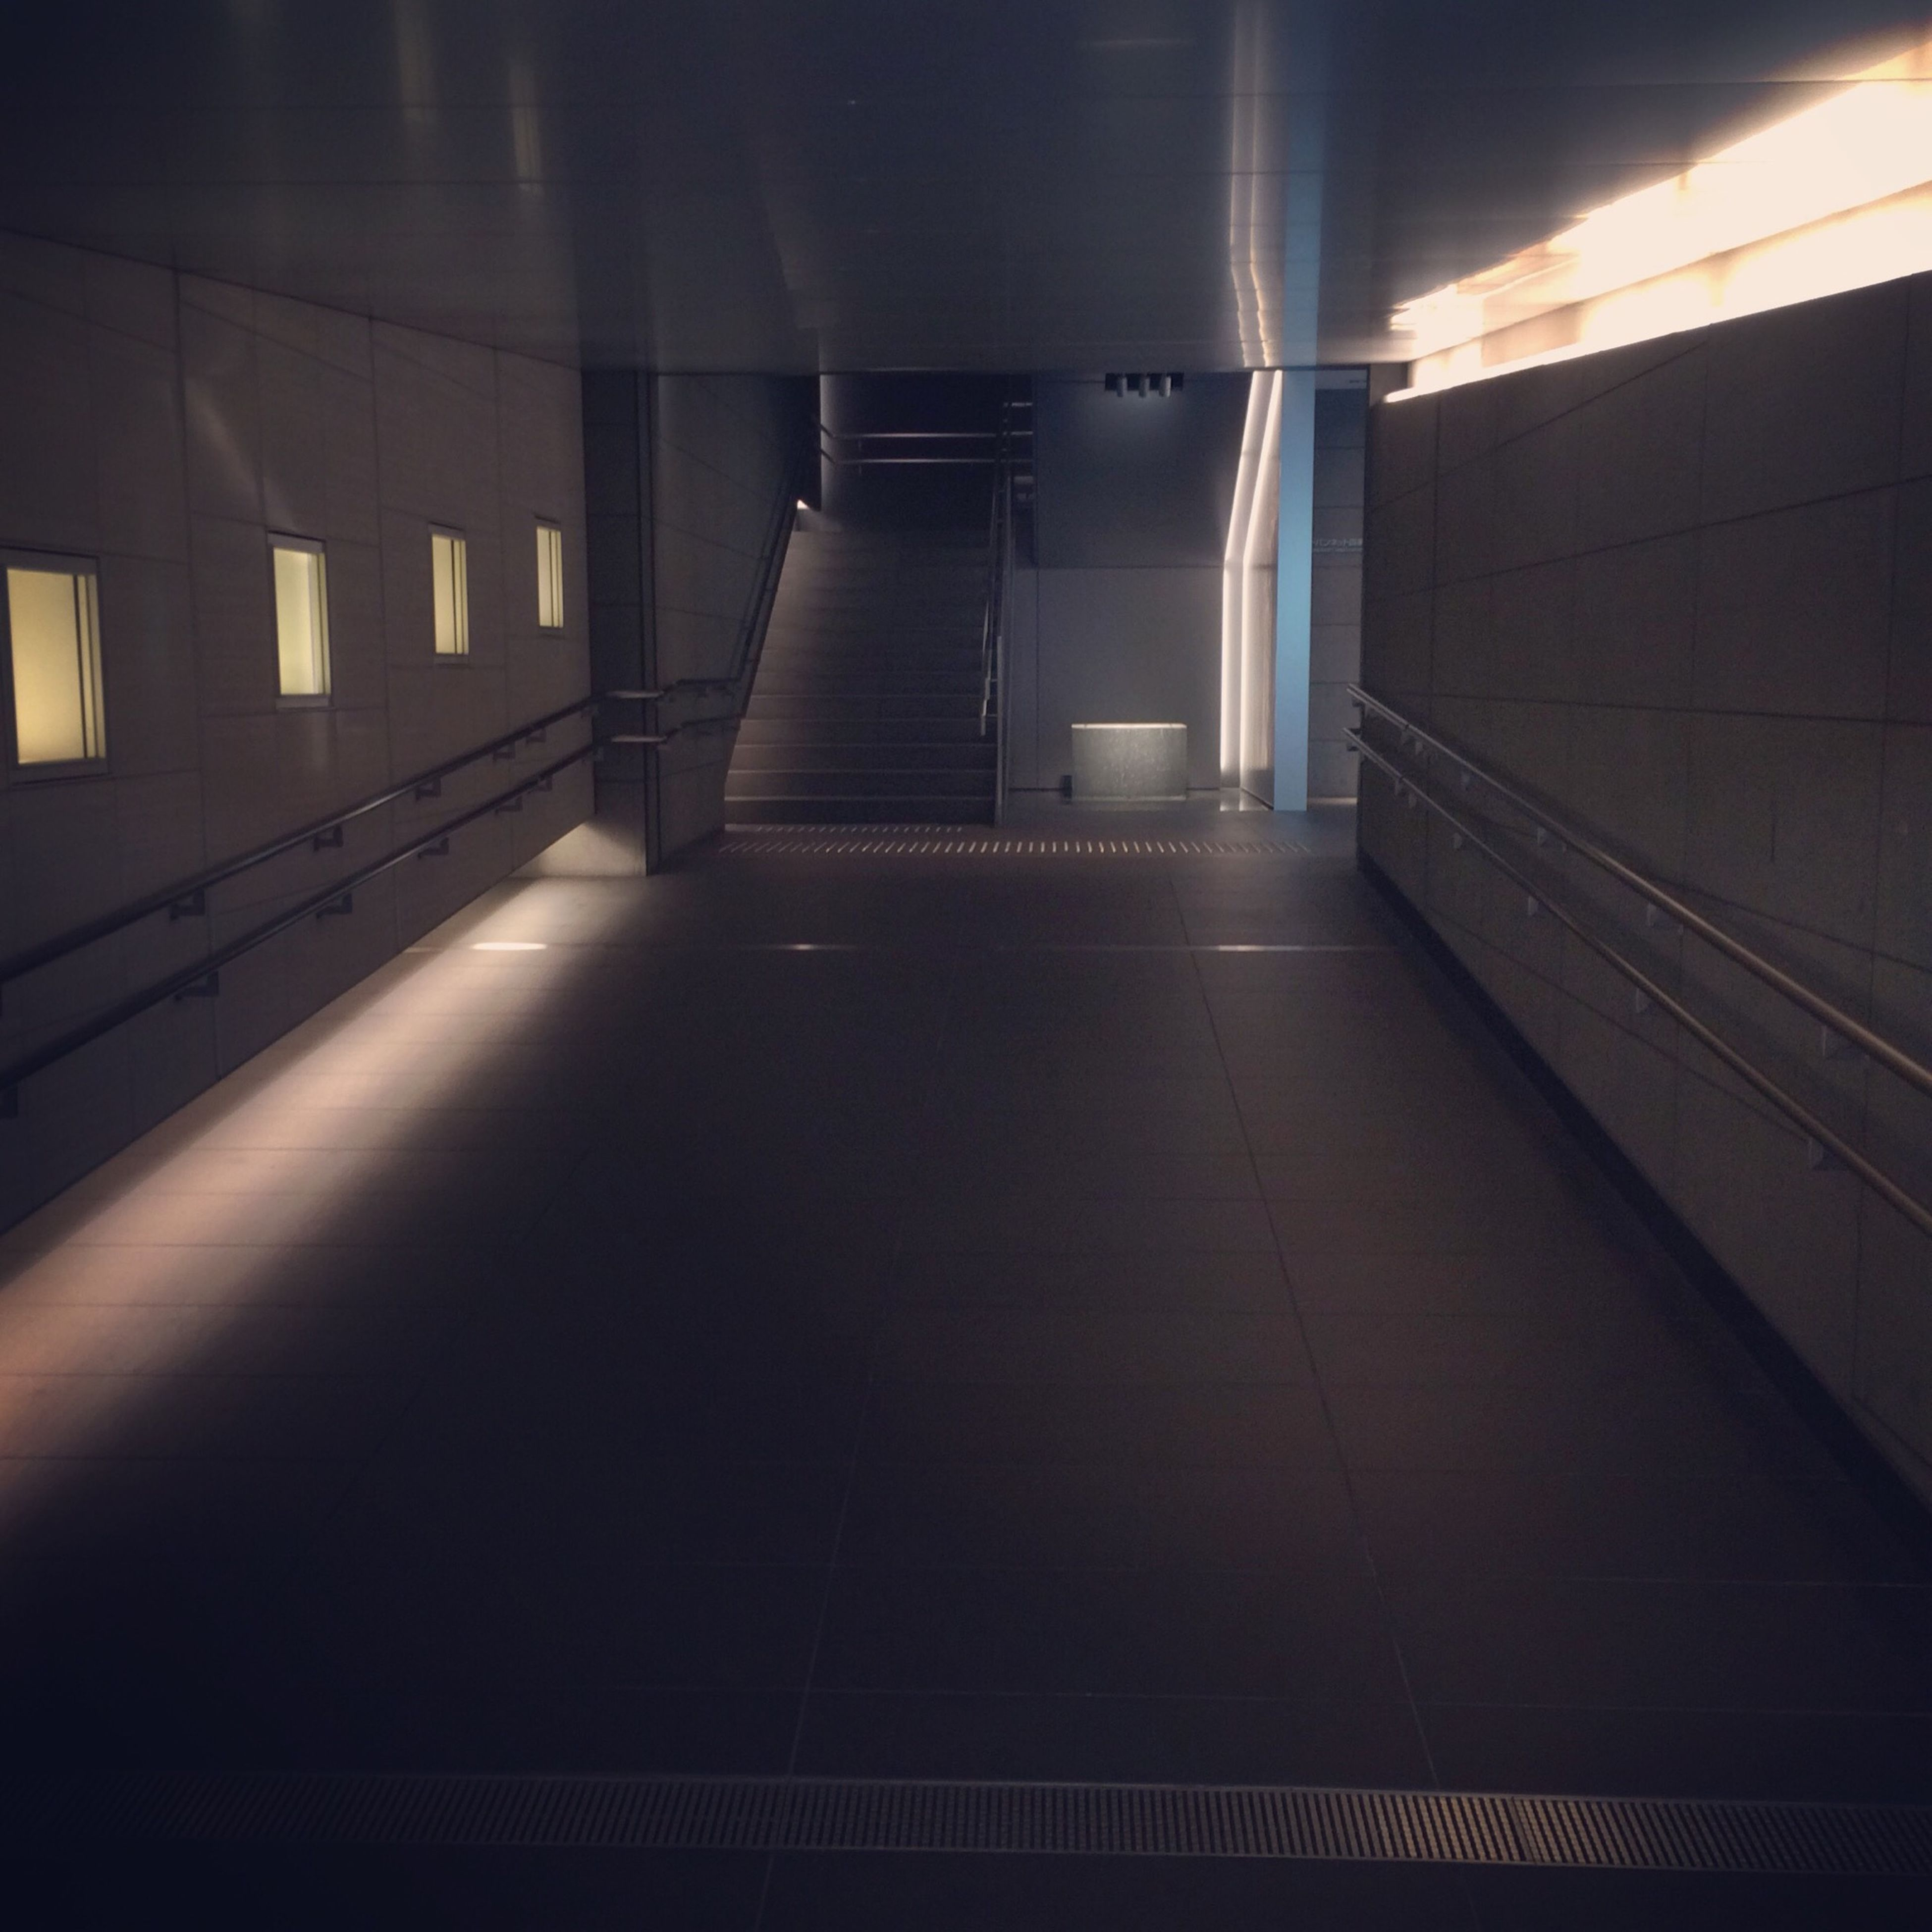 indoors, architecture, built structure, illuminated, empty, ceiling, absence, corridor, tiled floor, the way forward, flooring, lighting equipment, modern, building, interior, railing, diminishing perspective, reflection, no people, sunlight